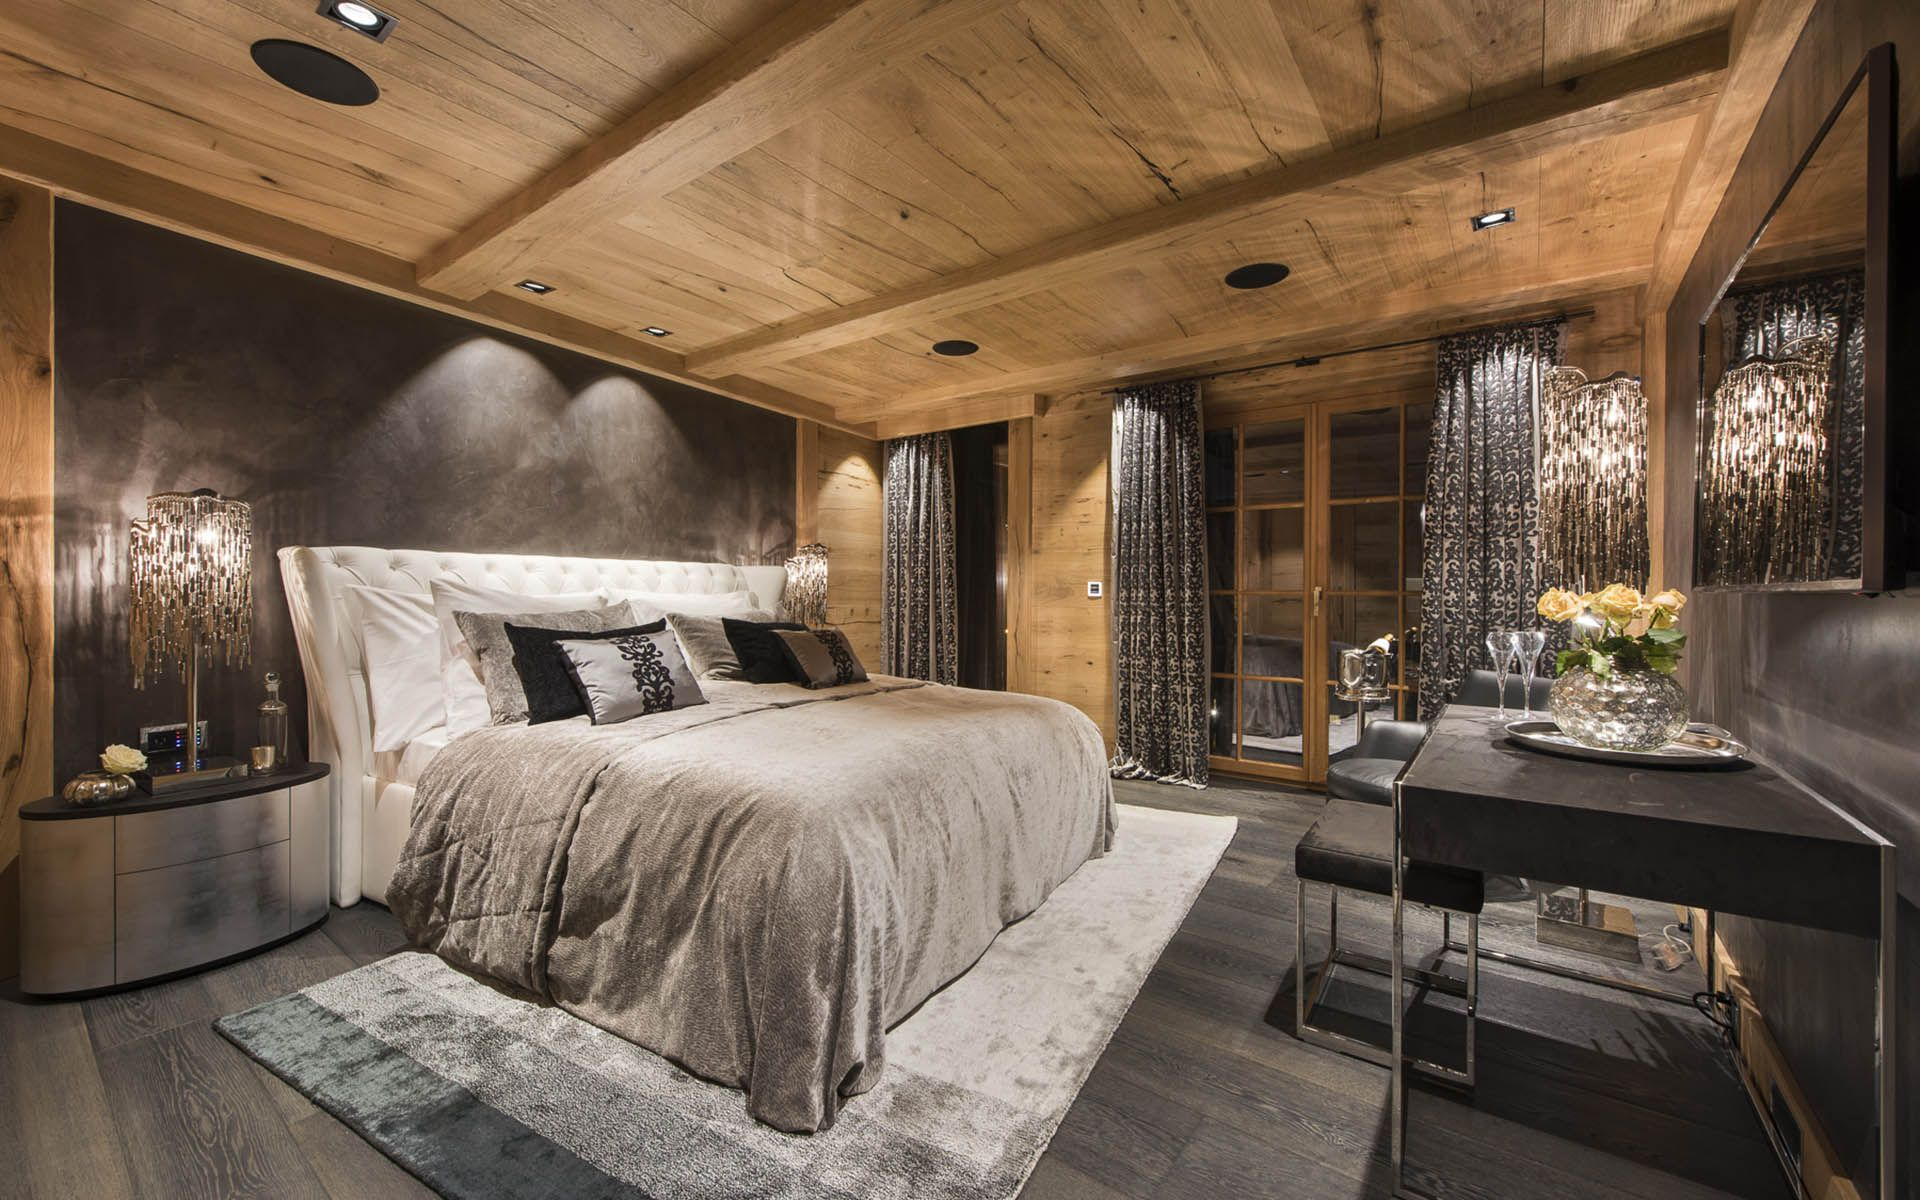 Chalet Aconcagua, Zermatt Is Part Of The Luxury Chalets 7 Heavens Project  Next To The Sunnegga Funicular. This Luxury Chalets Sleeps 10 People In 5  Bedrooms ...